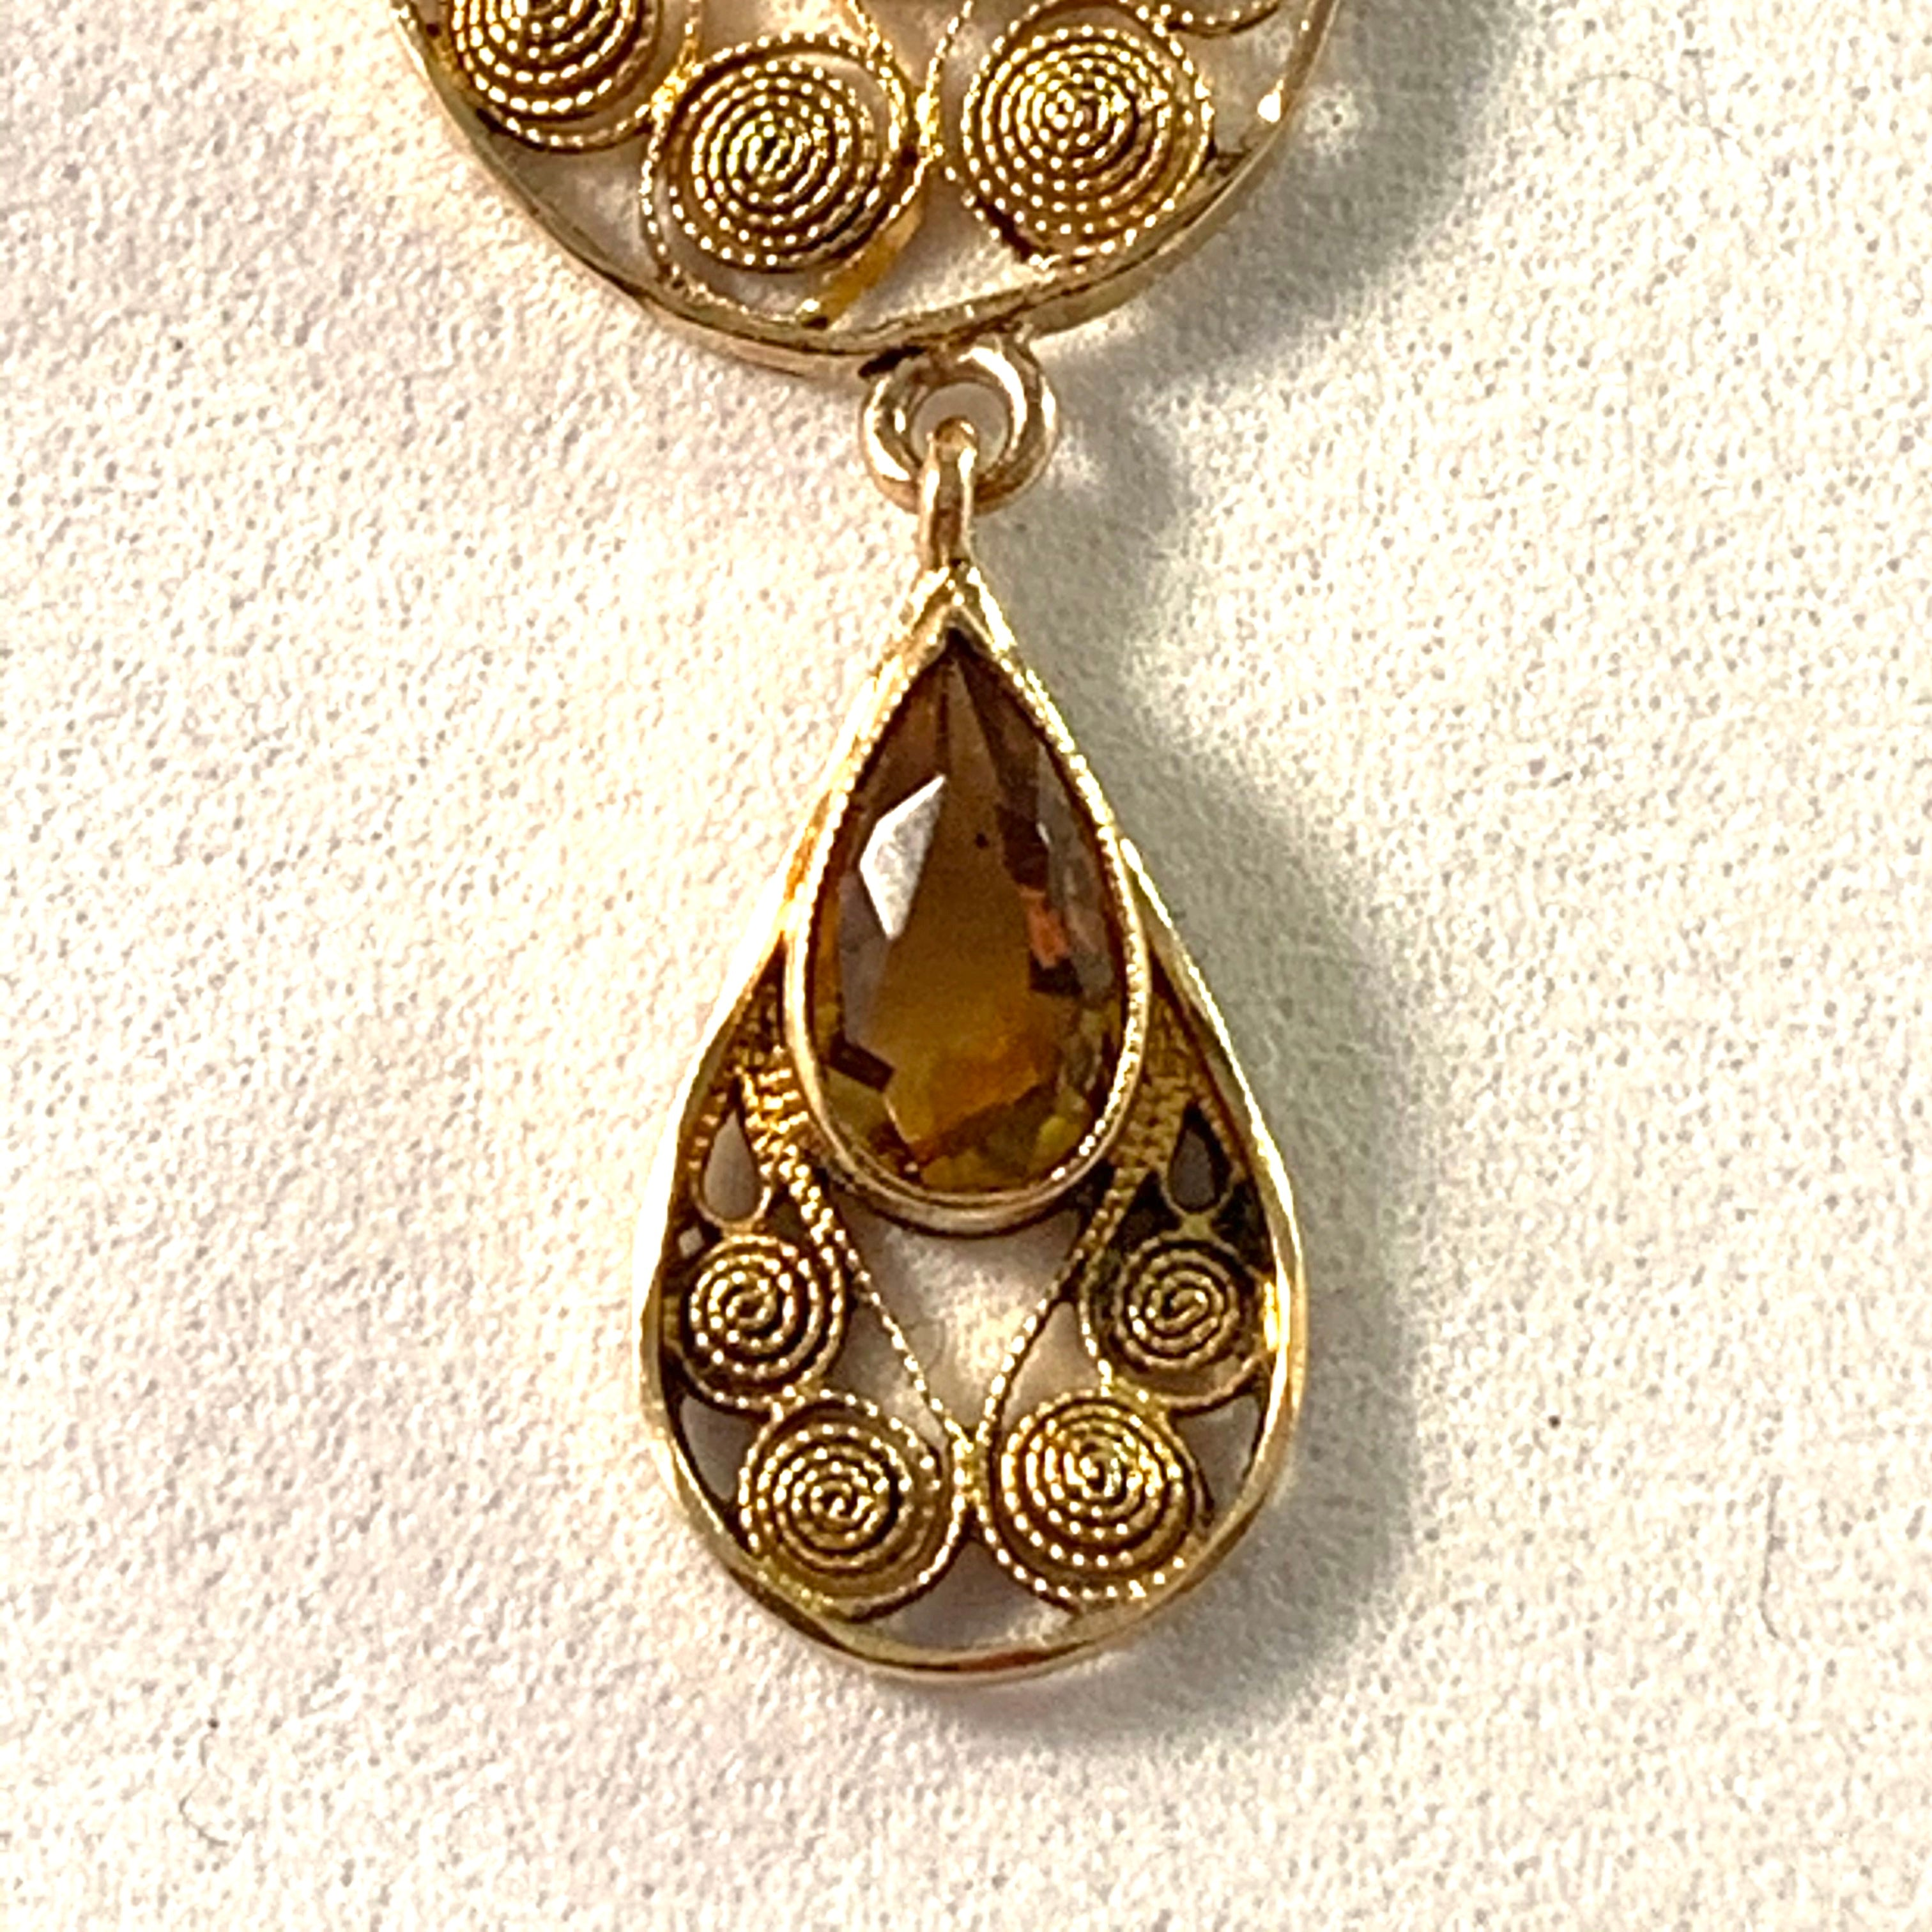 J Petterson, Sweden 1905. Edwardian Antique Jugendstil 18k Gold Citrine Necklace